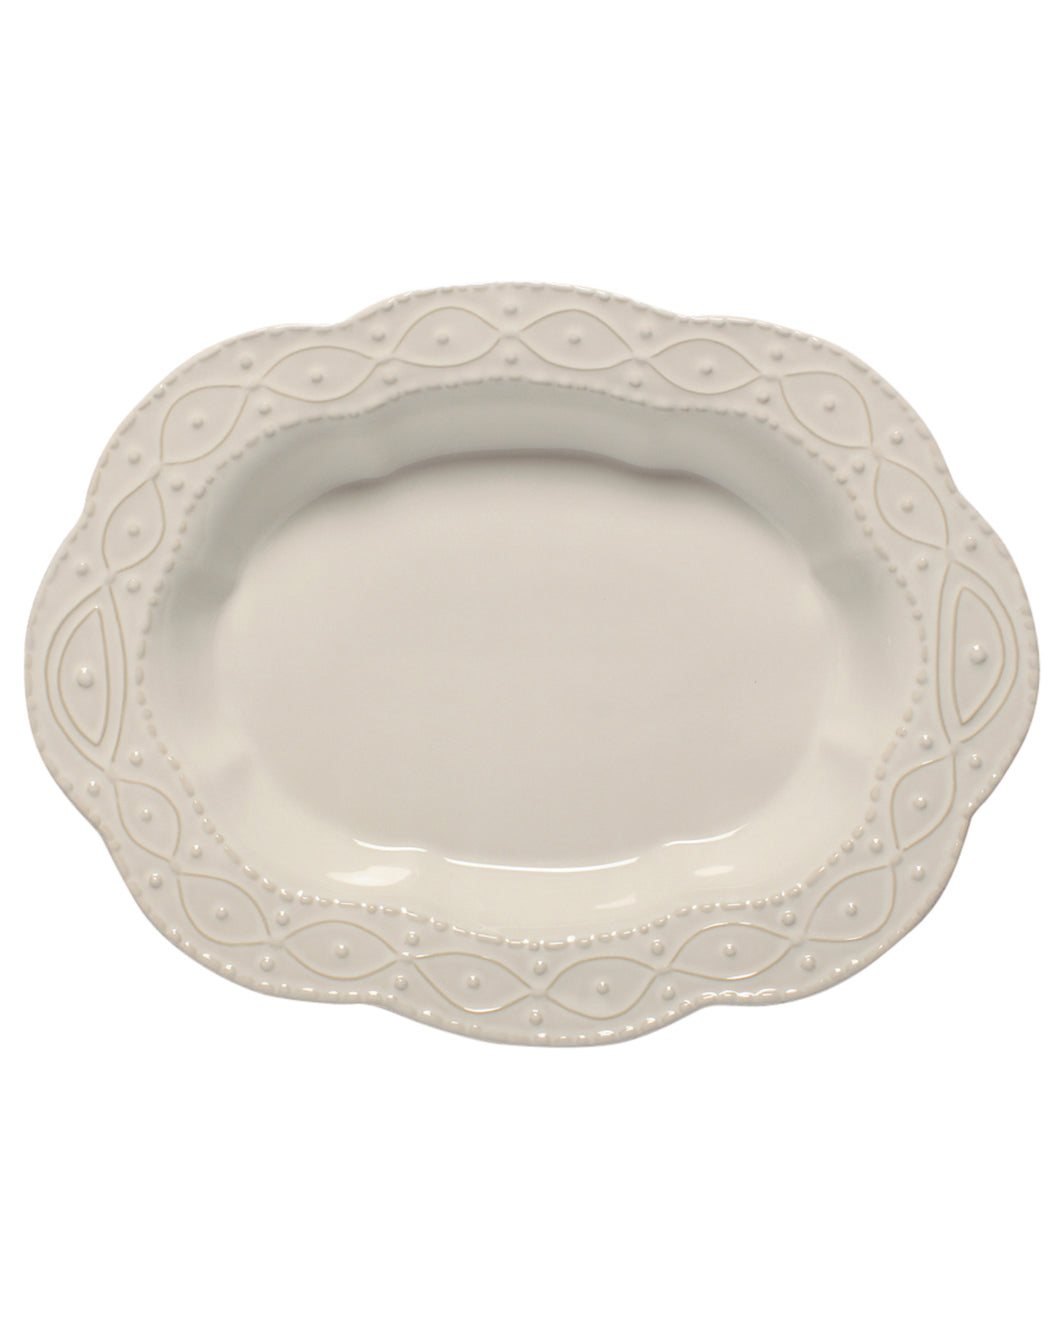 Skyros Legado White Large Oval Serving Bowl